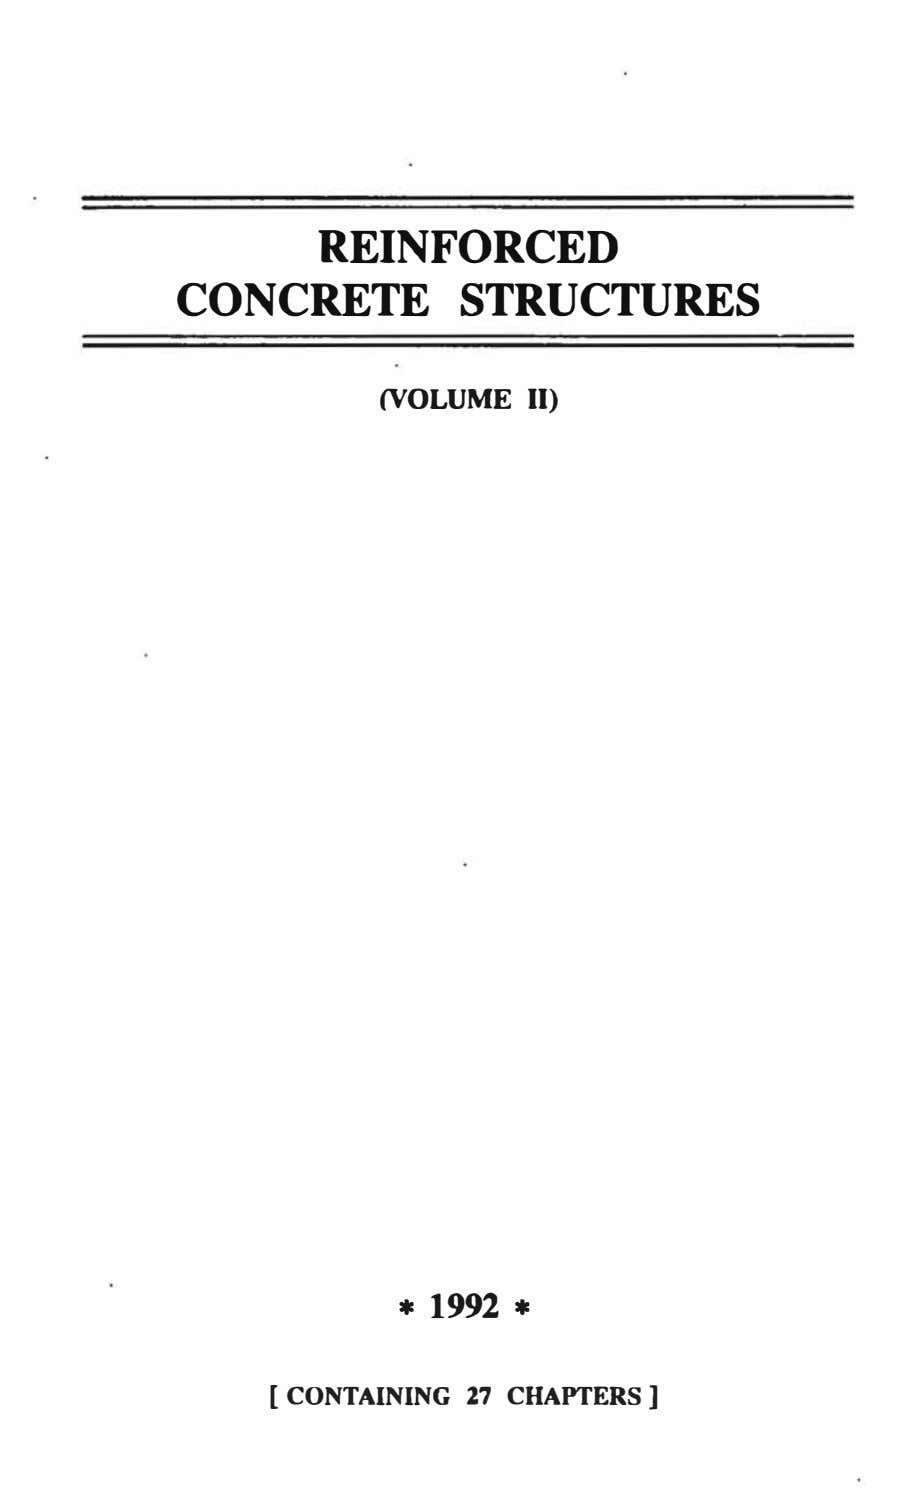 REINFORCED CONCRETE STRUCTURES (VOLUME II) * 1992 * [ CONTAINING 27 CHAPTERS]